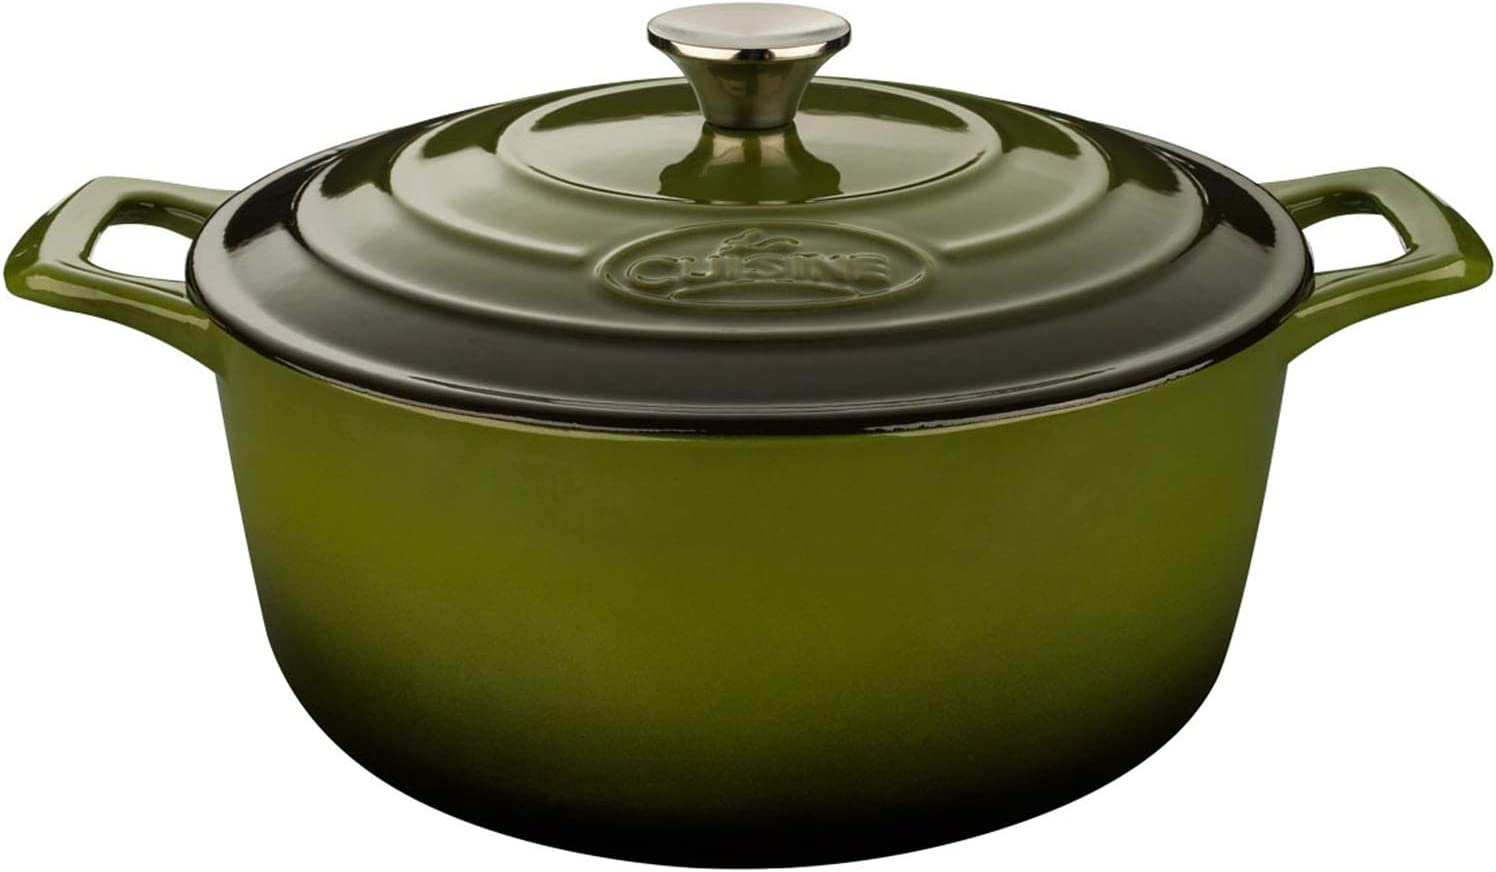 La Cuisine 6.5 Qt Enameled Cast Iron Covered Round Dutch Oven, Green